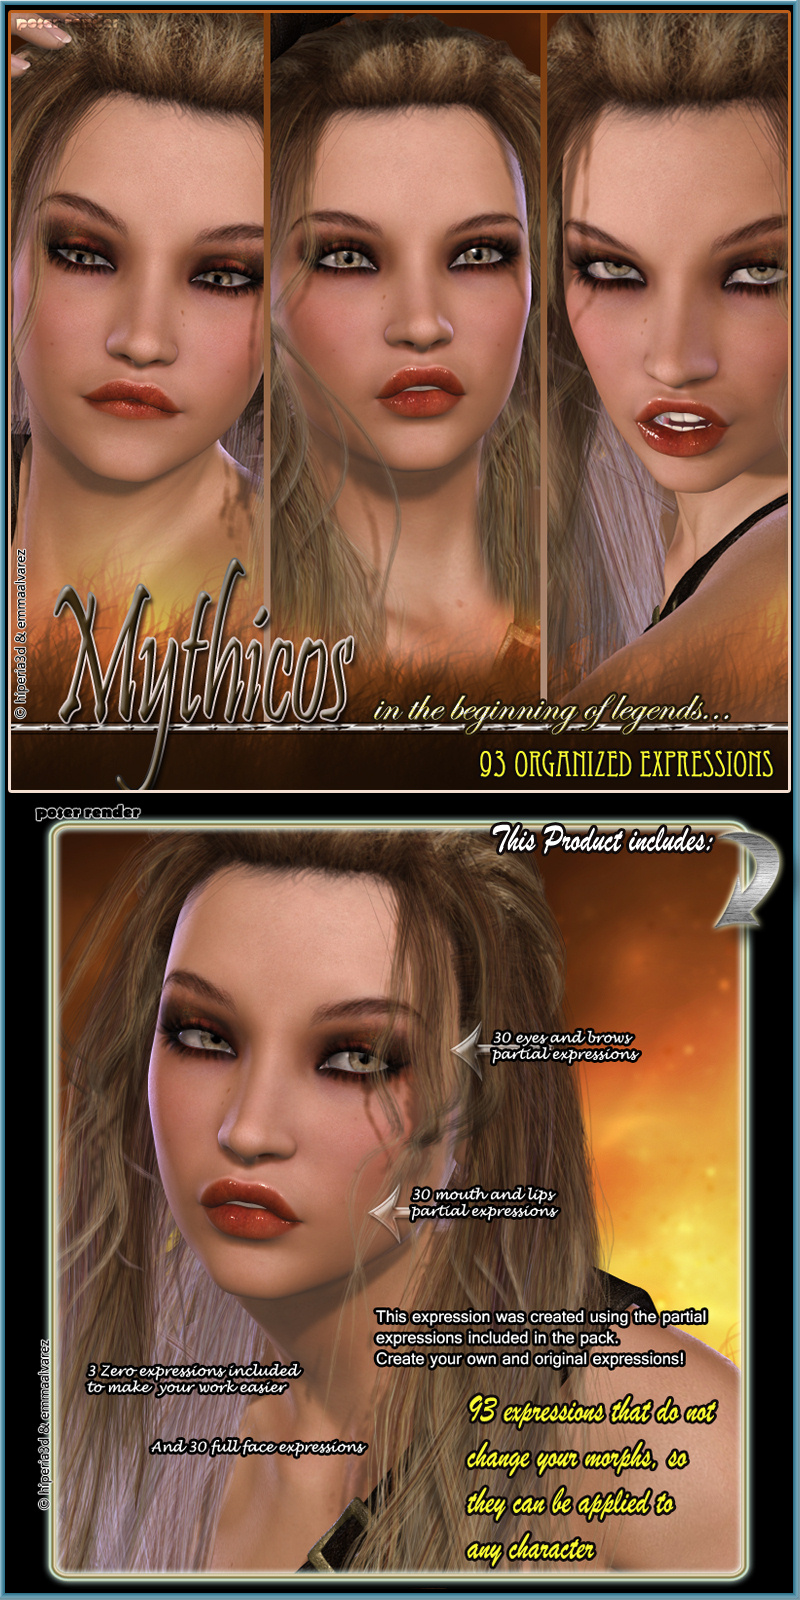 Mythicos 93 Organized Expressions